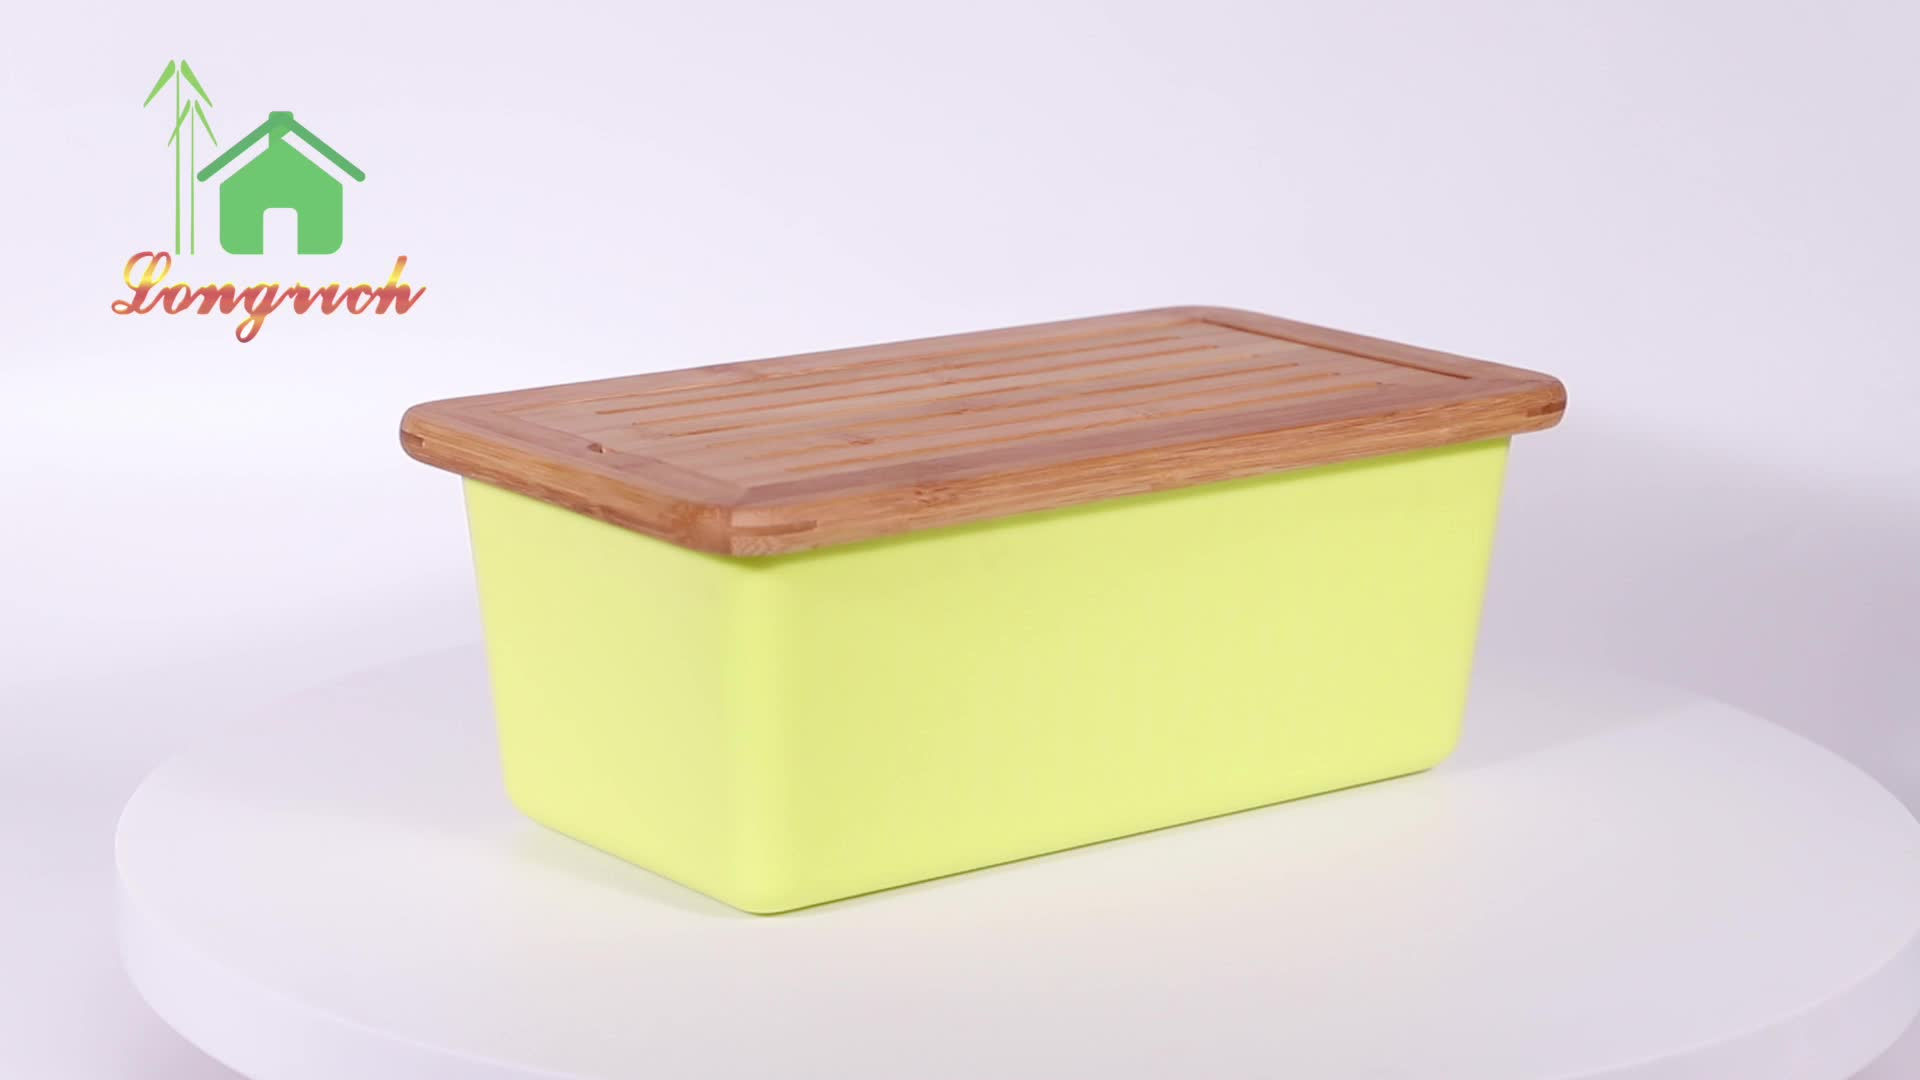 FSC Certified Sustainable Wipe Clean Freshness Preservation Natural Wooden Bamboo Bread Box